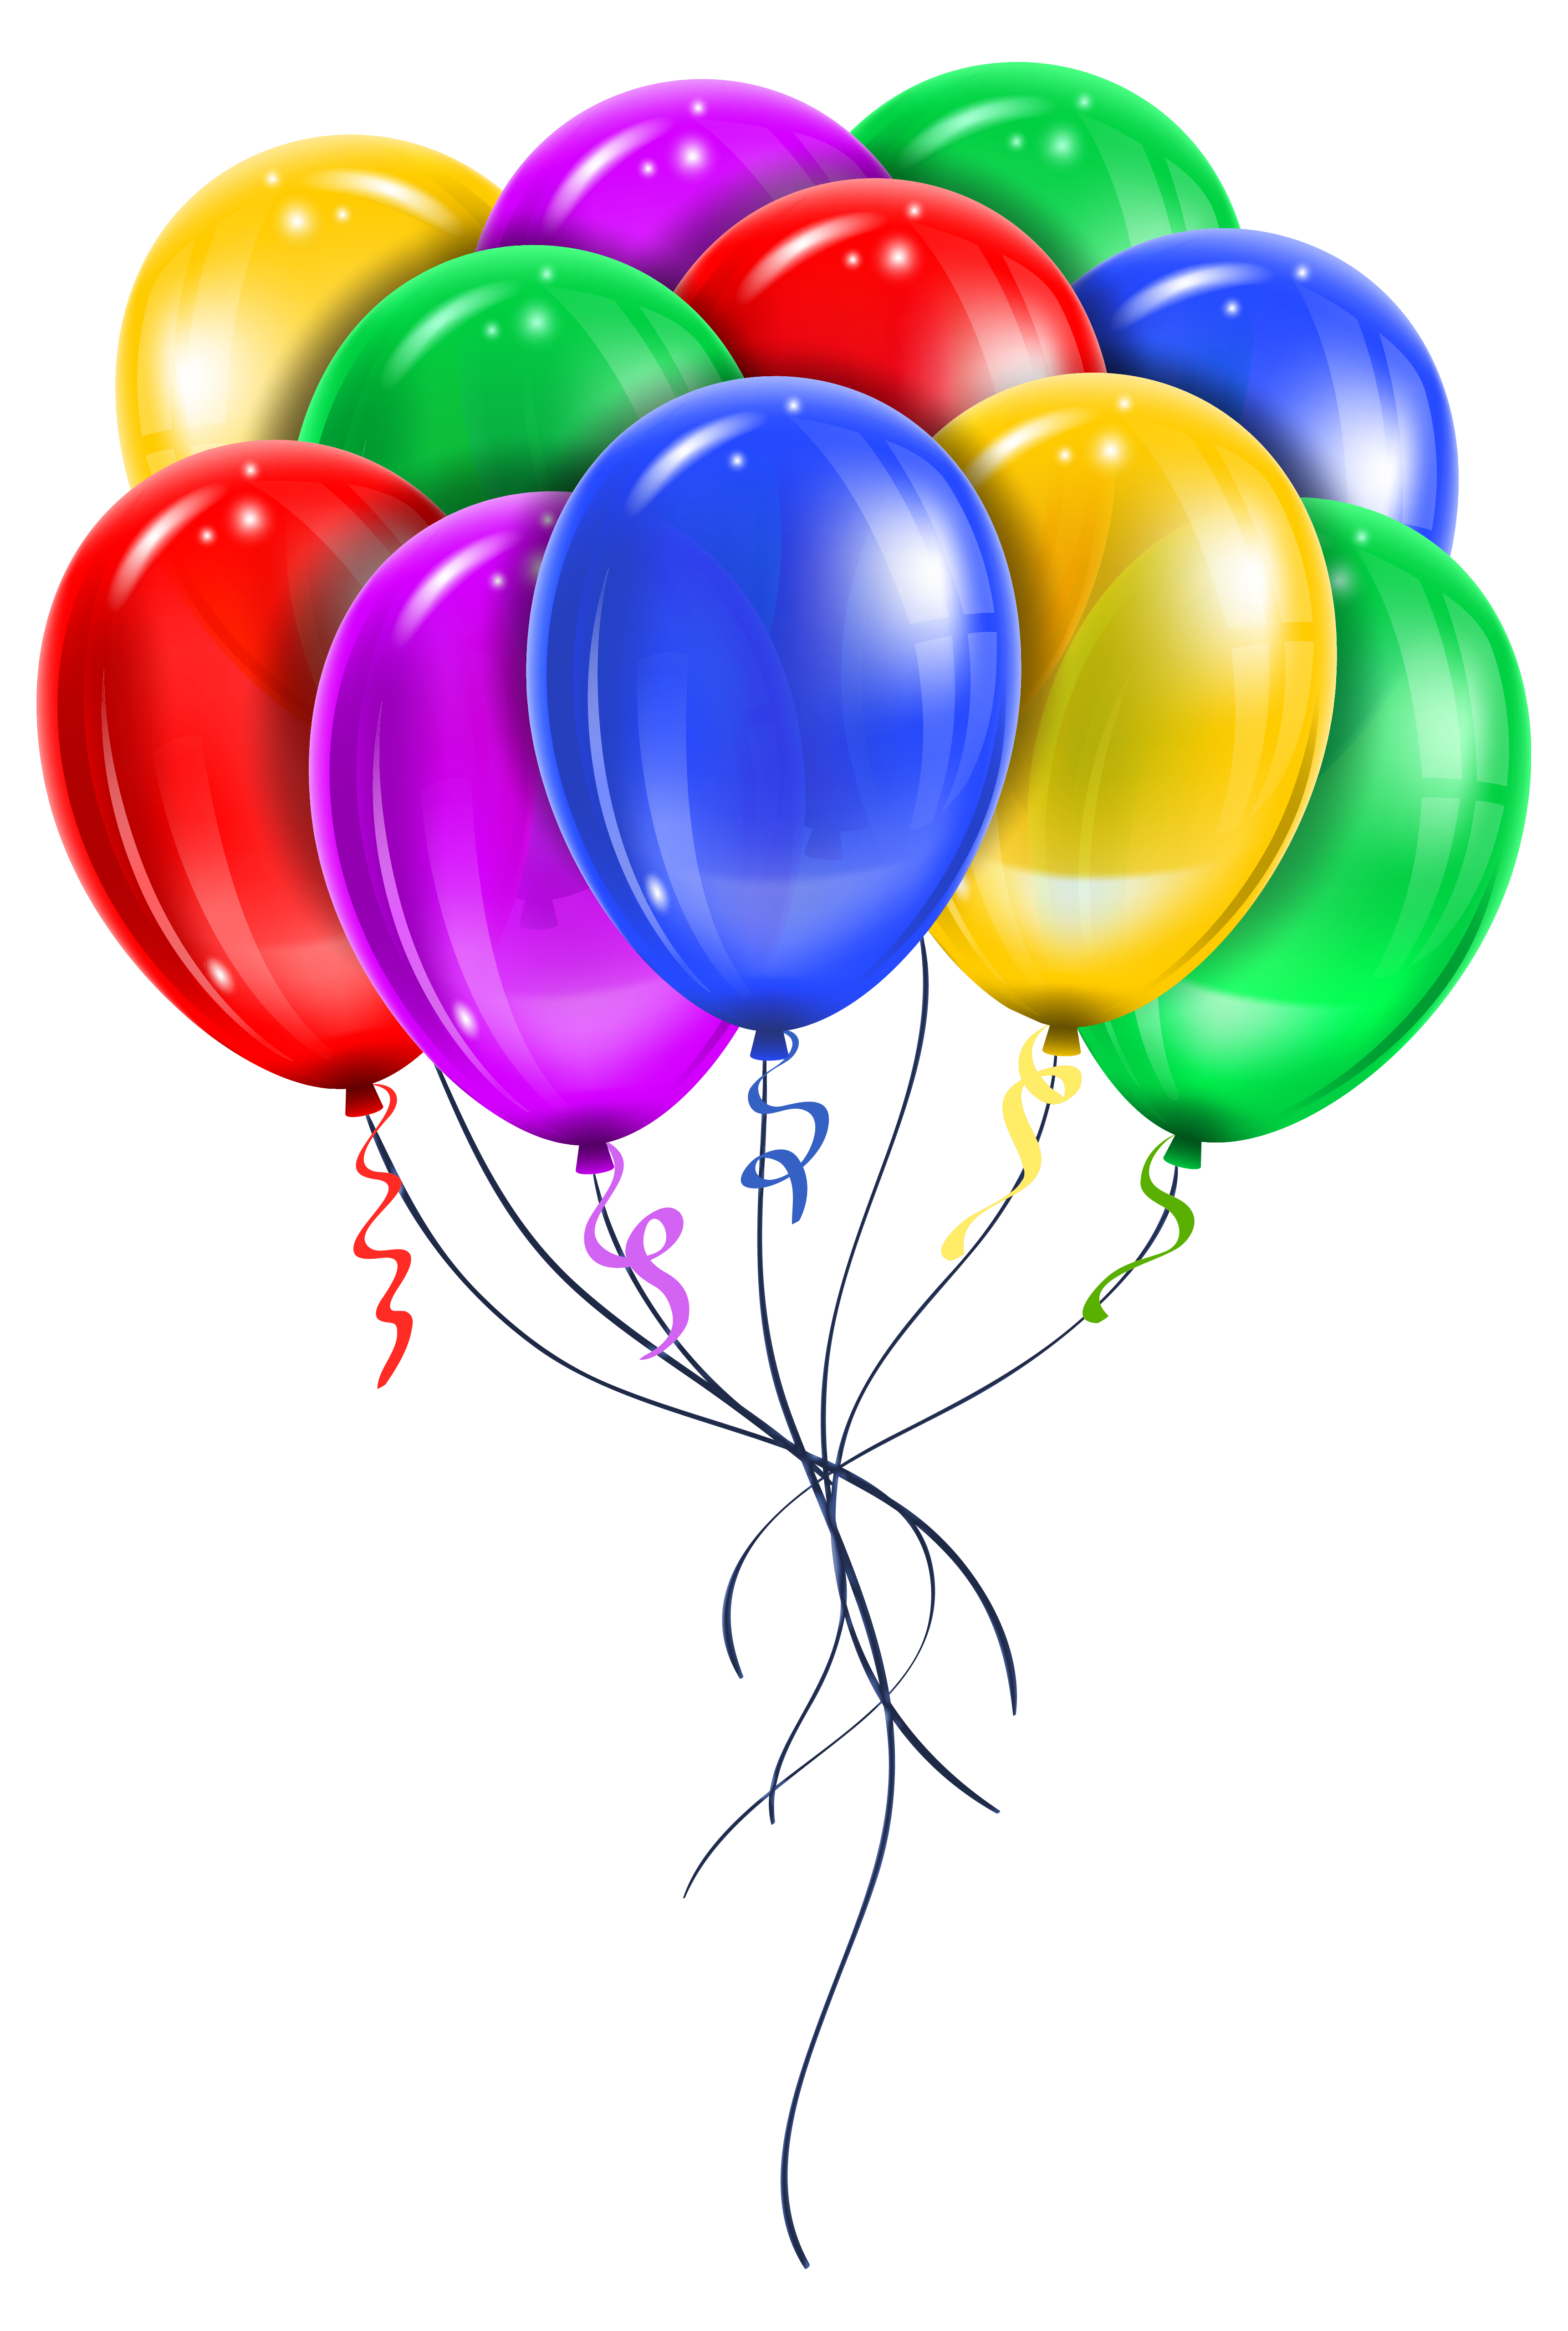 clipart library library Transparent multi color balloons. Vector balloon bunch